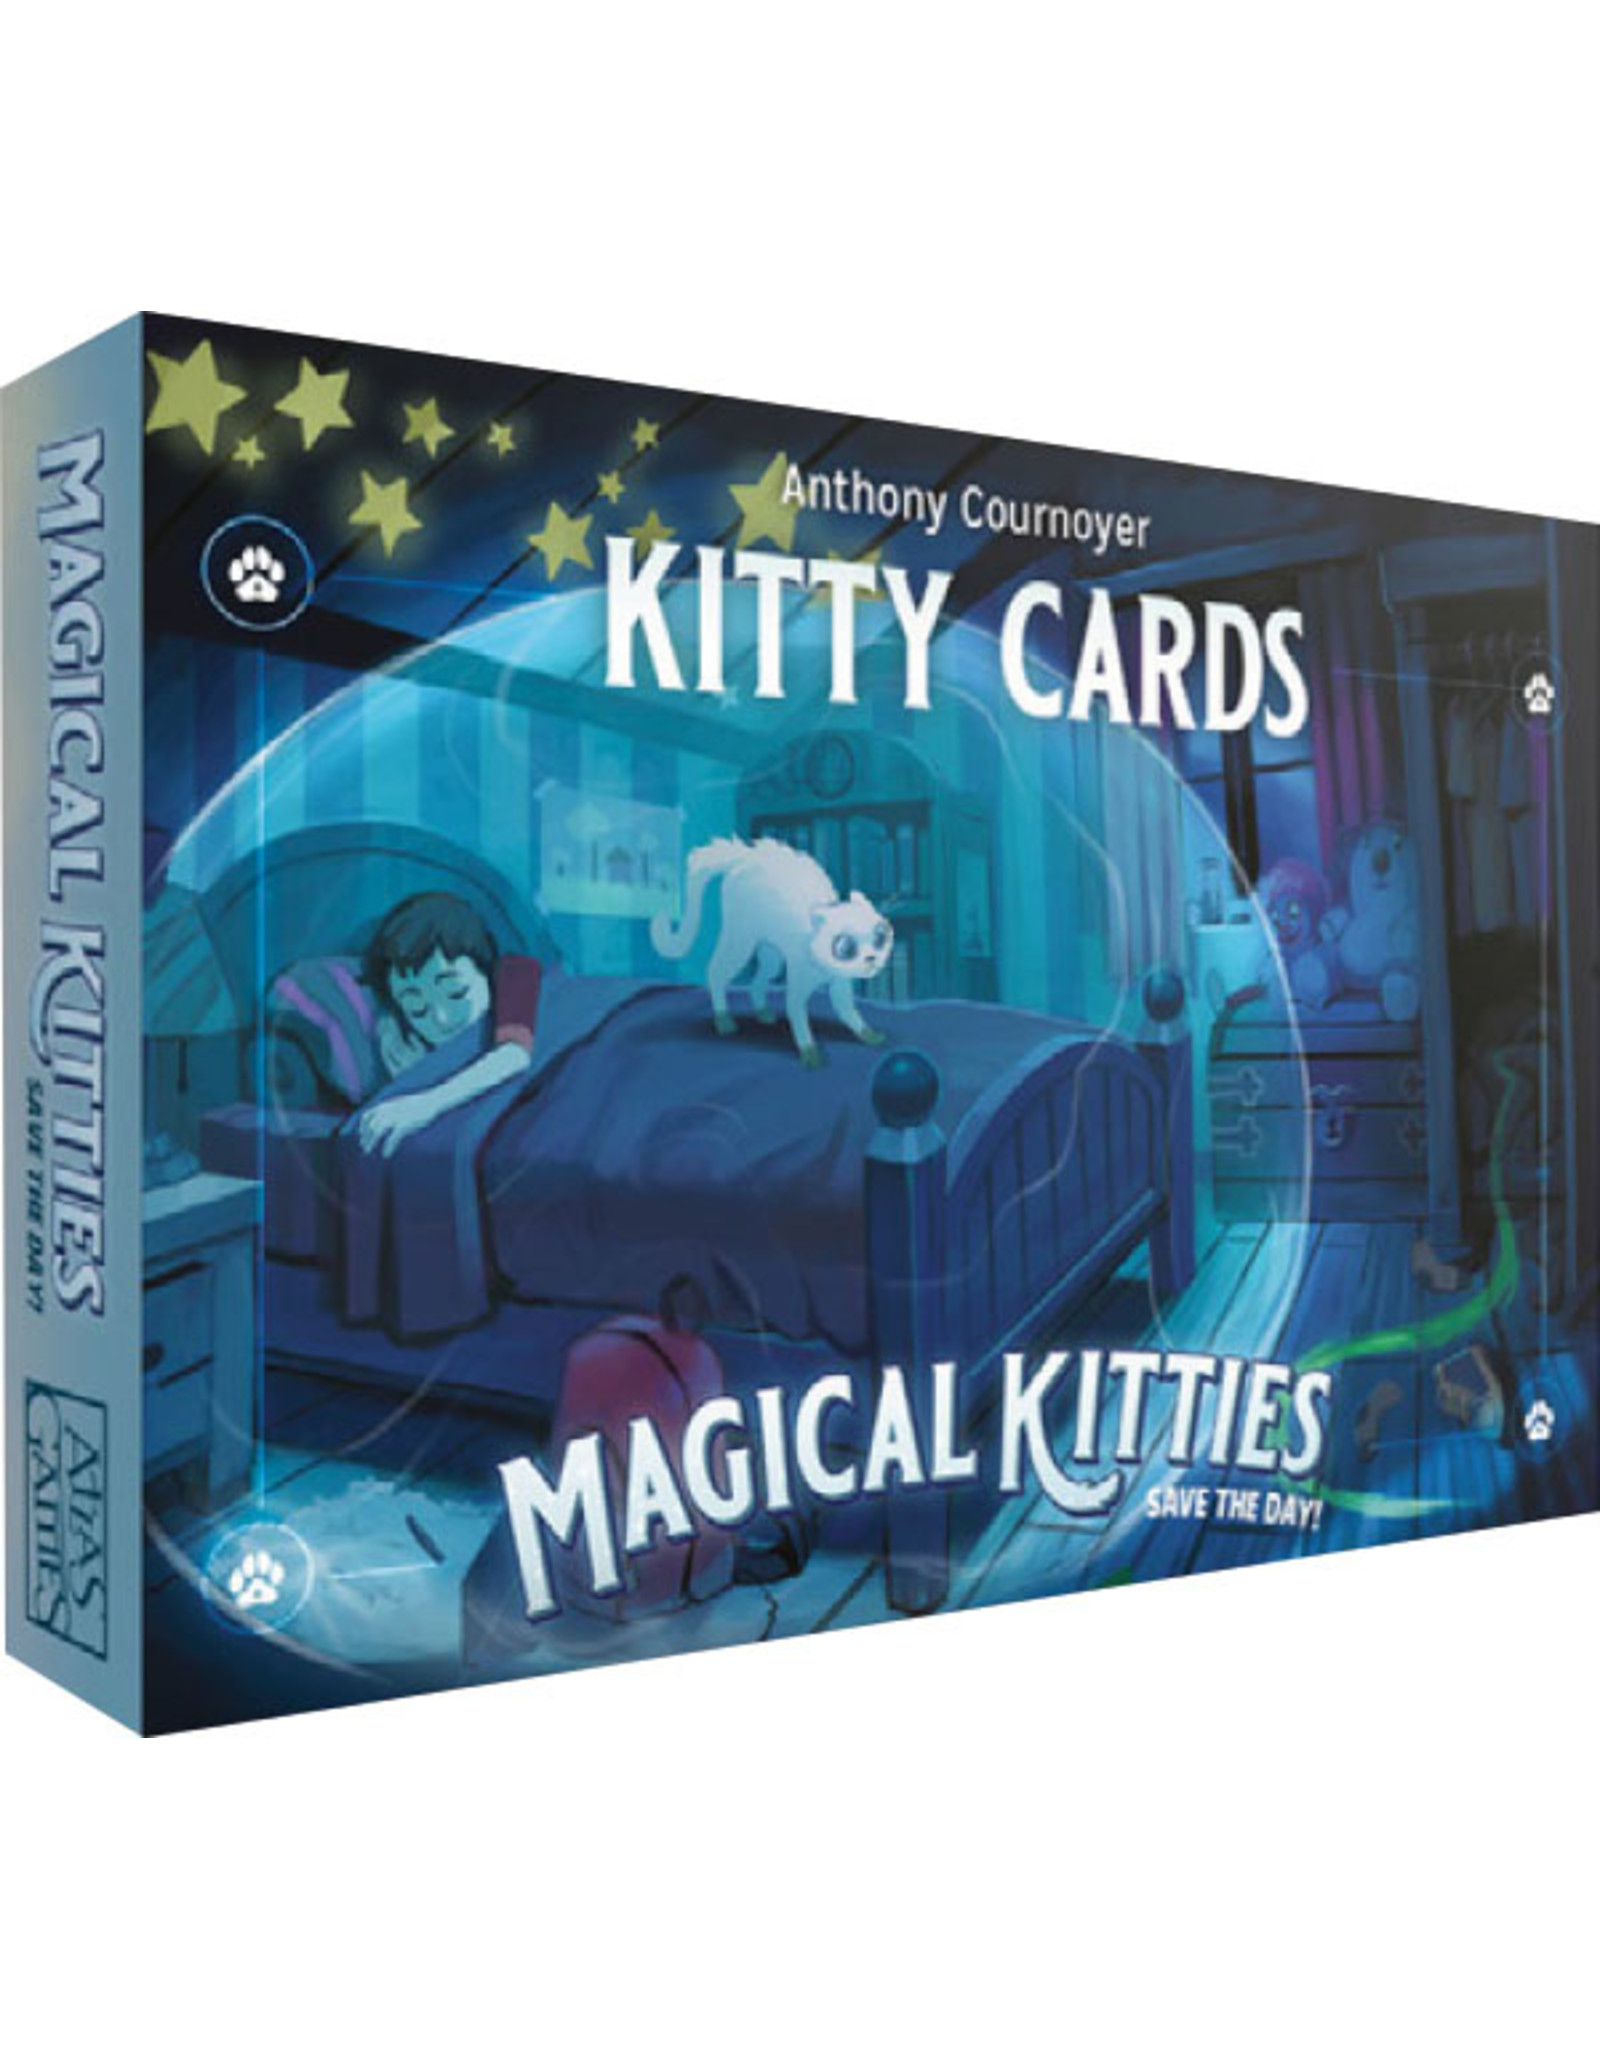 Atlas Games Magical Kitties Save the Day! RPG: Kitty Cards